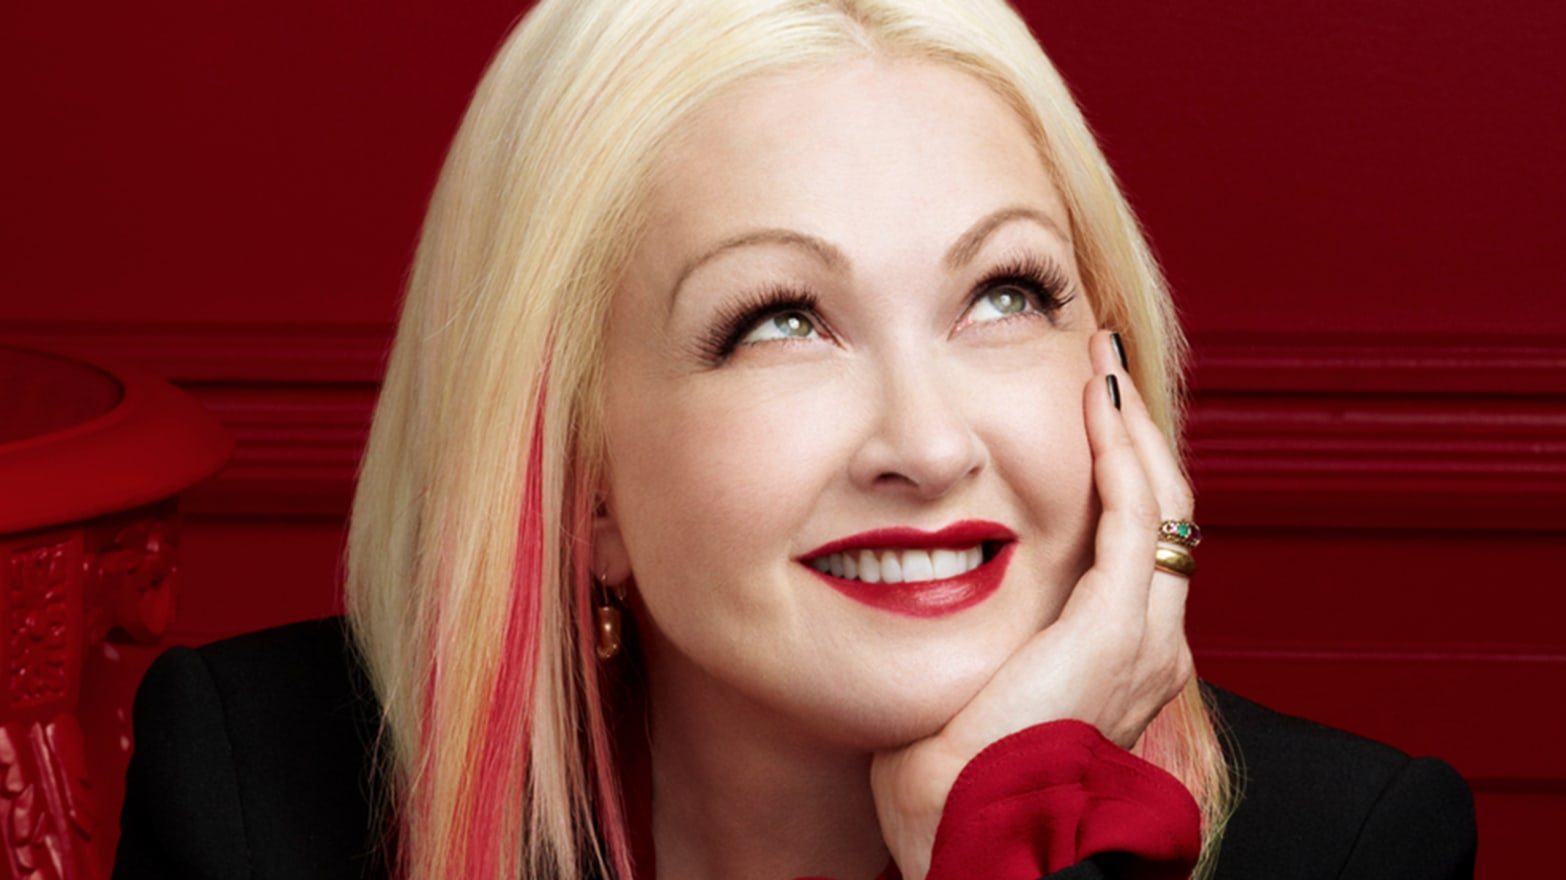 Girls Just Want To cyndi lauper: girls just want to have birth control